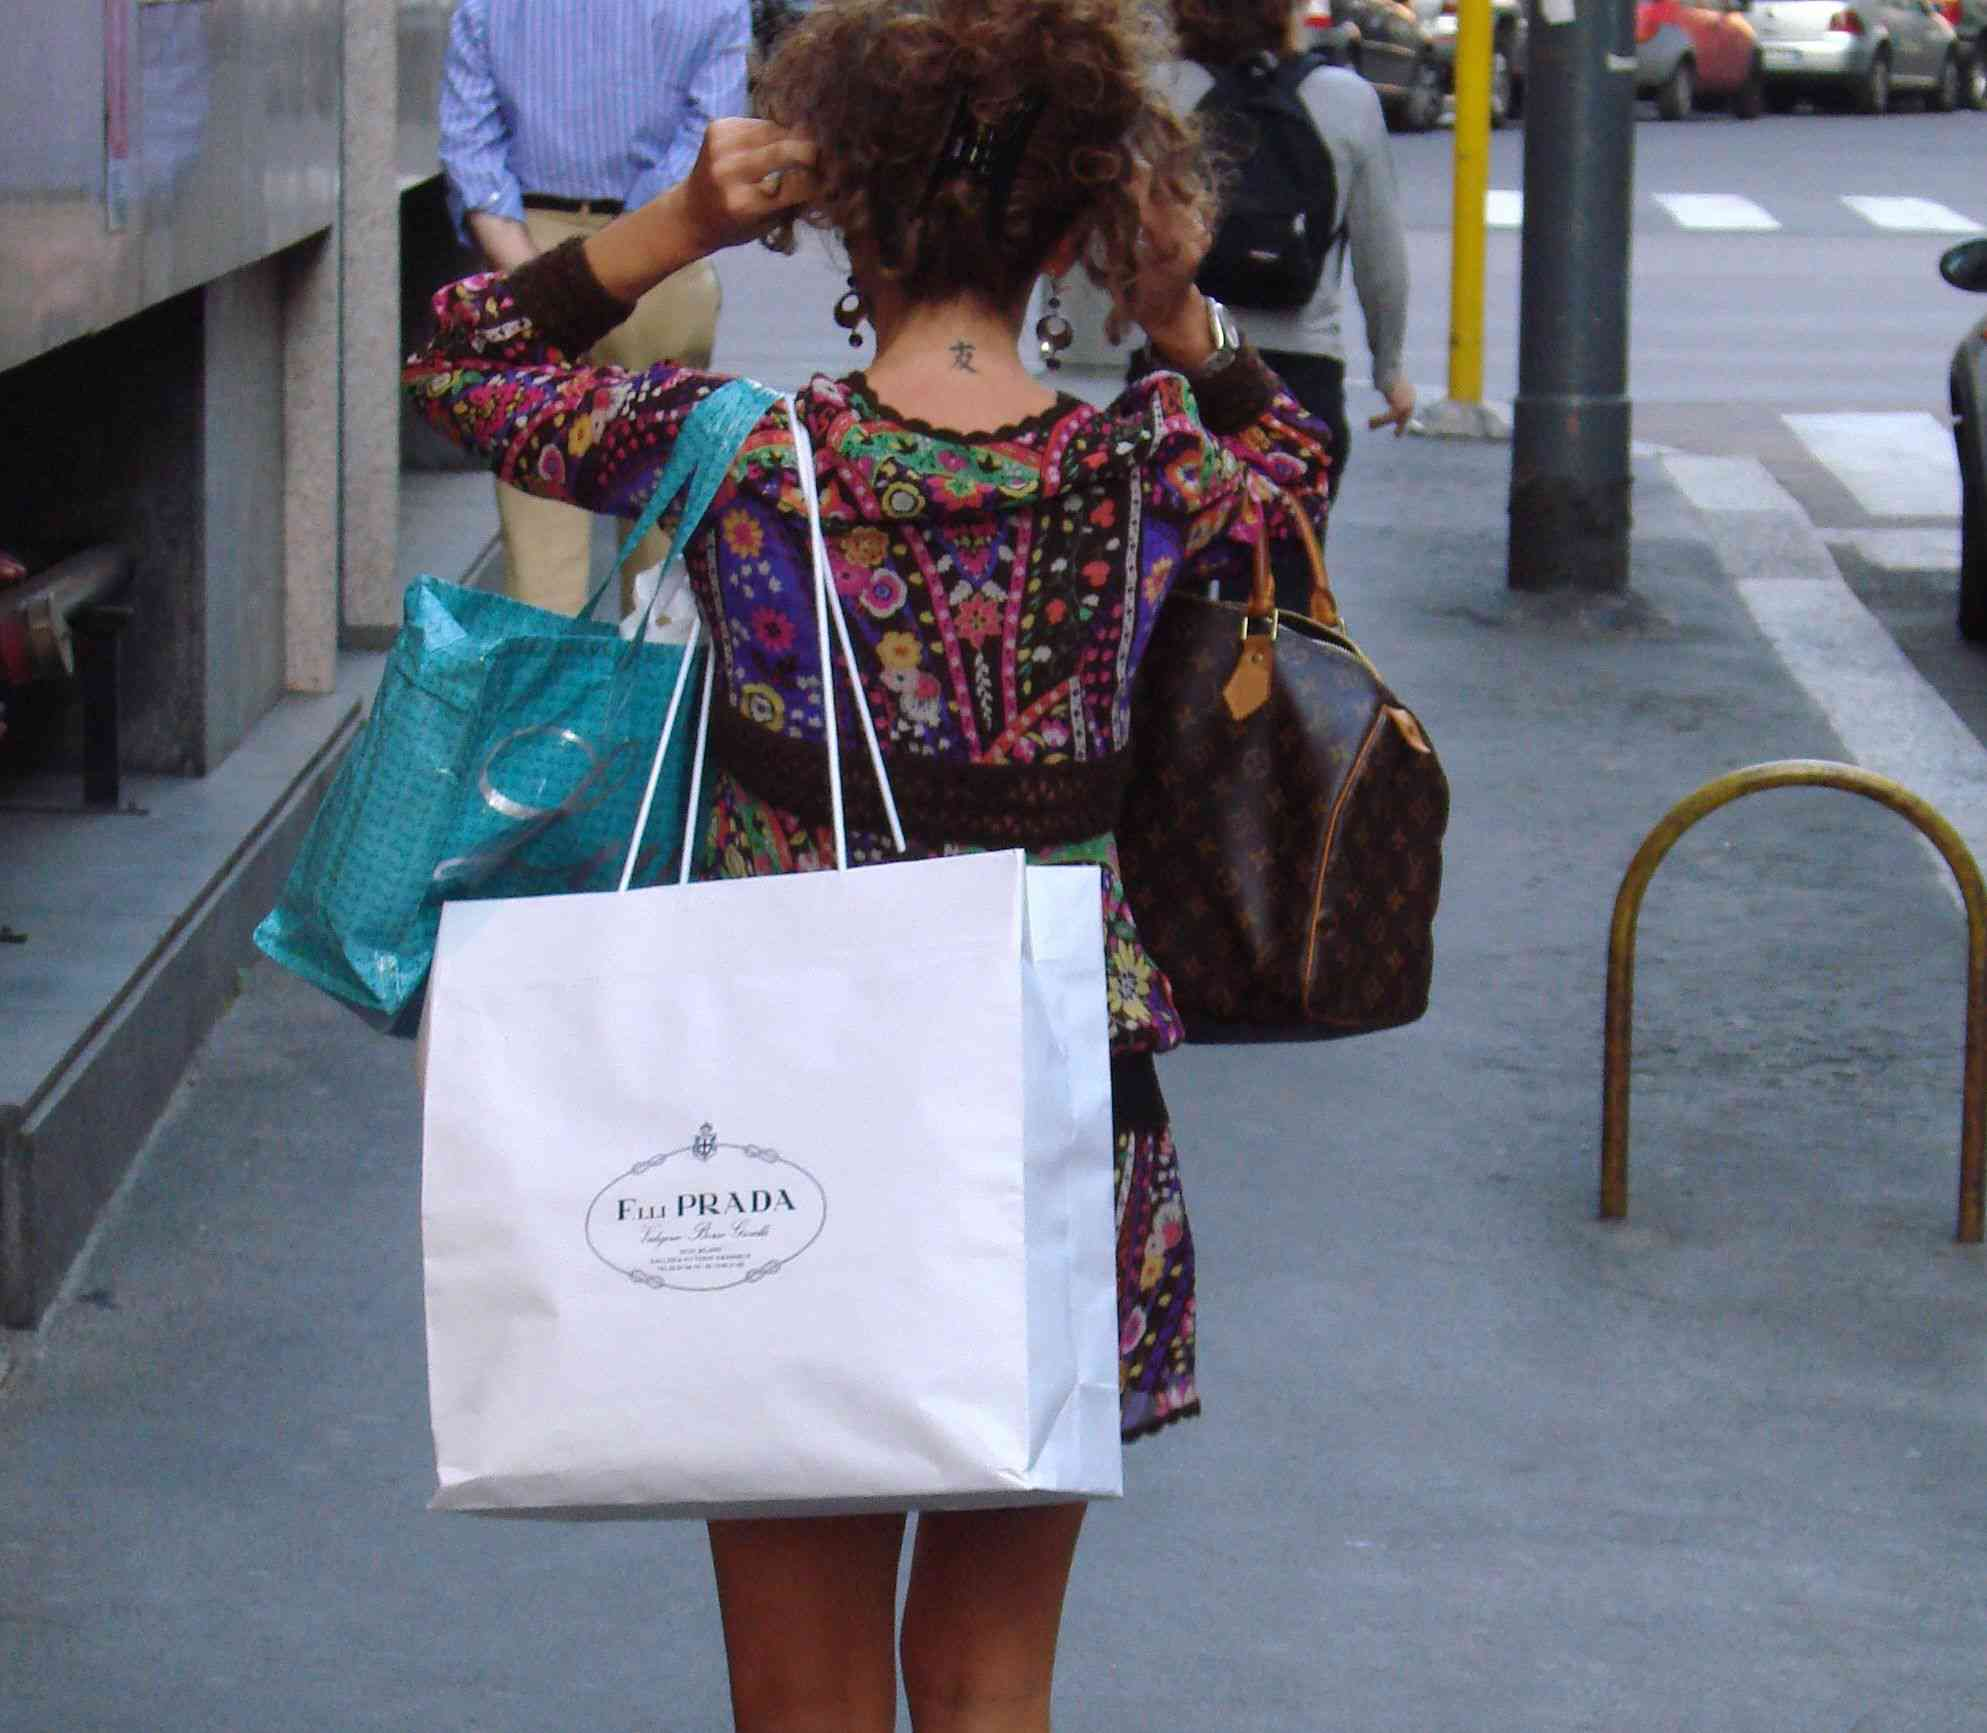 Woman walking down the sidewalk with shopping bags and a designer purse